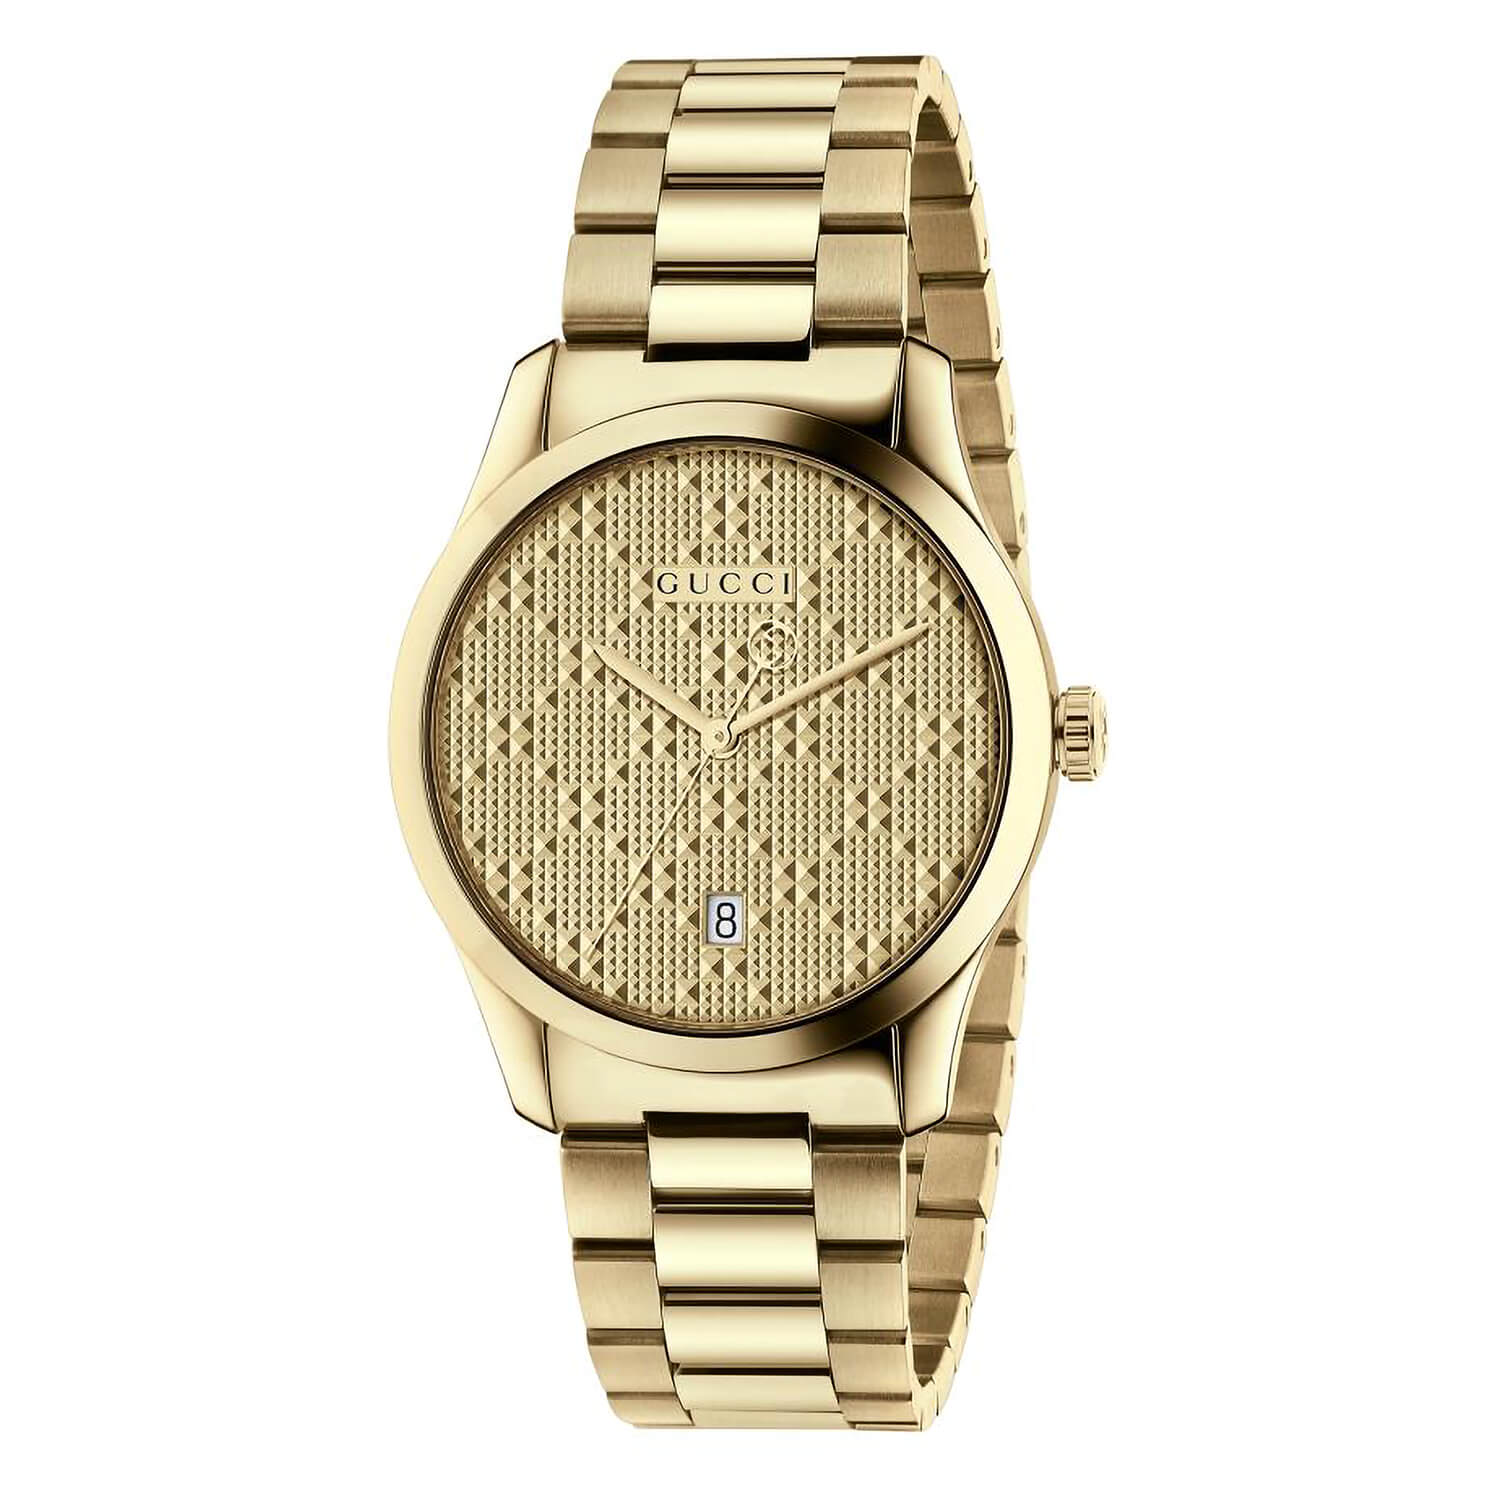 Distinctive Gucci G-Timeless 38mm diamanté gold-tone contemporary watch